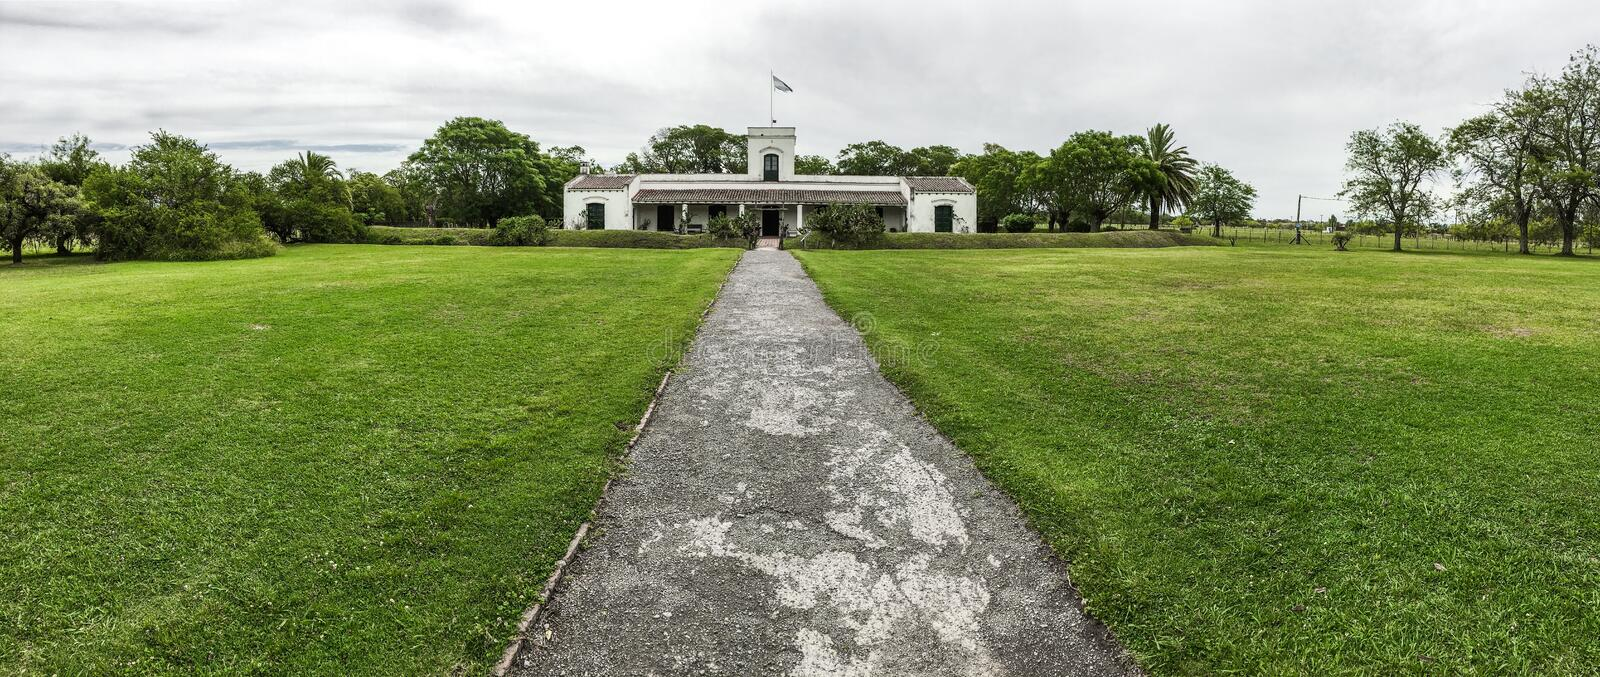 San Antonio de Areco. Colonial style building at San Antonio de Areco, Buenos Aires stock photography